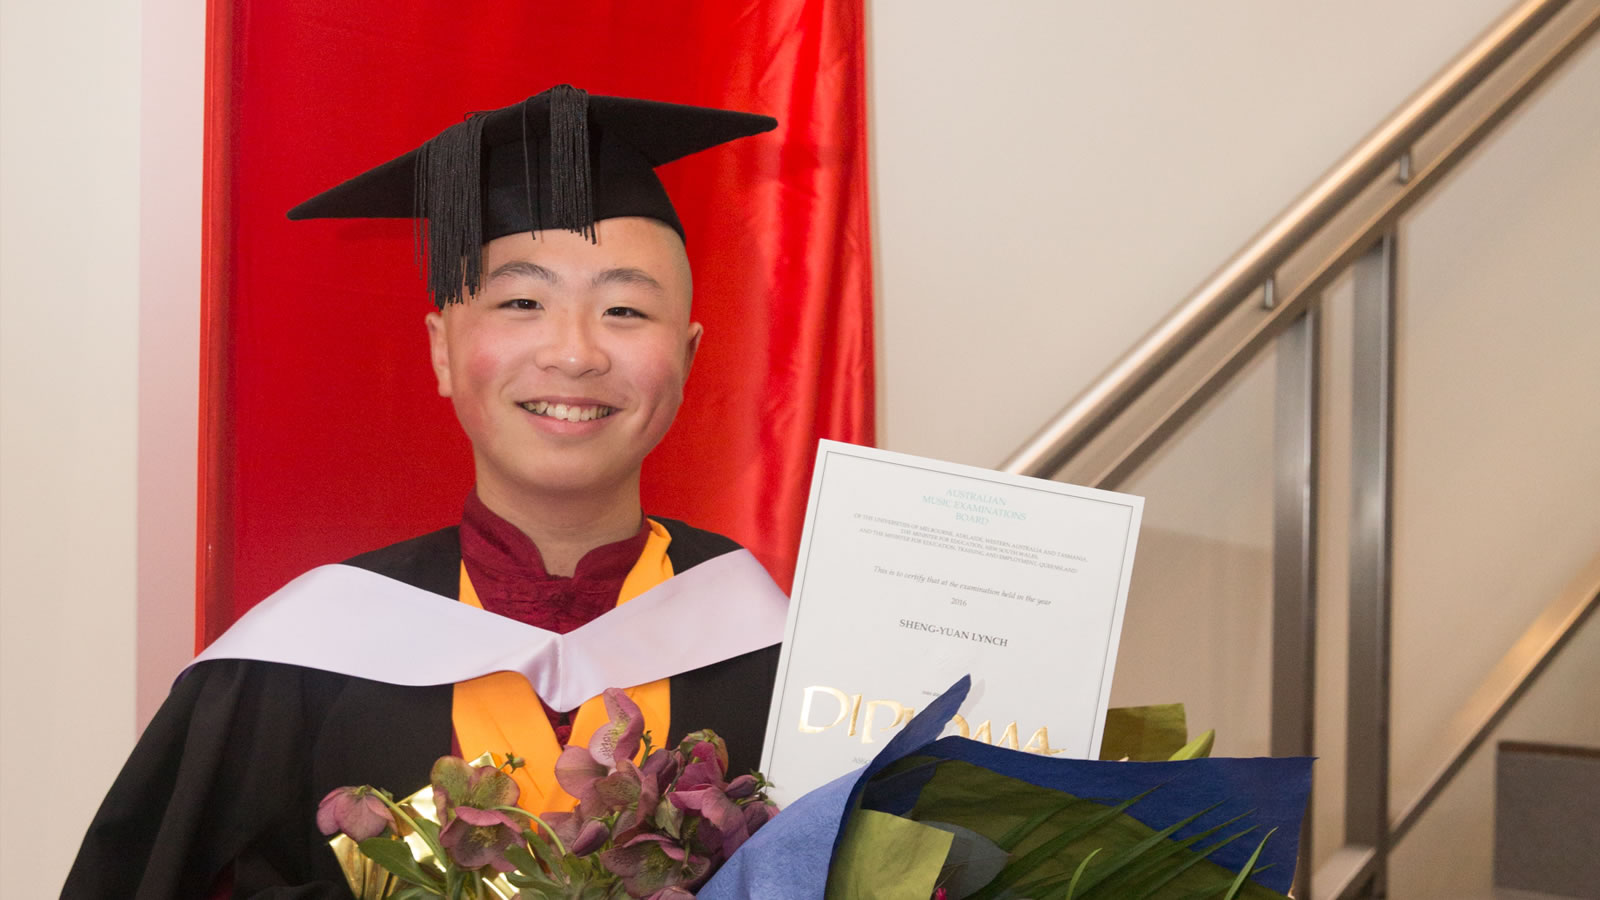 Year 6 student Sheng-Yuan Lynch attending his UTAS Graduation Ceremony earlier this year.